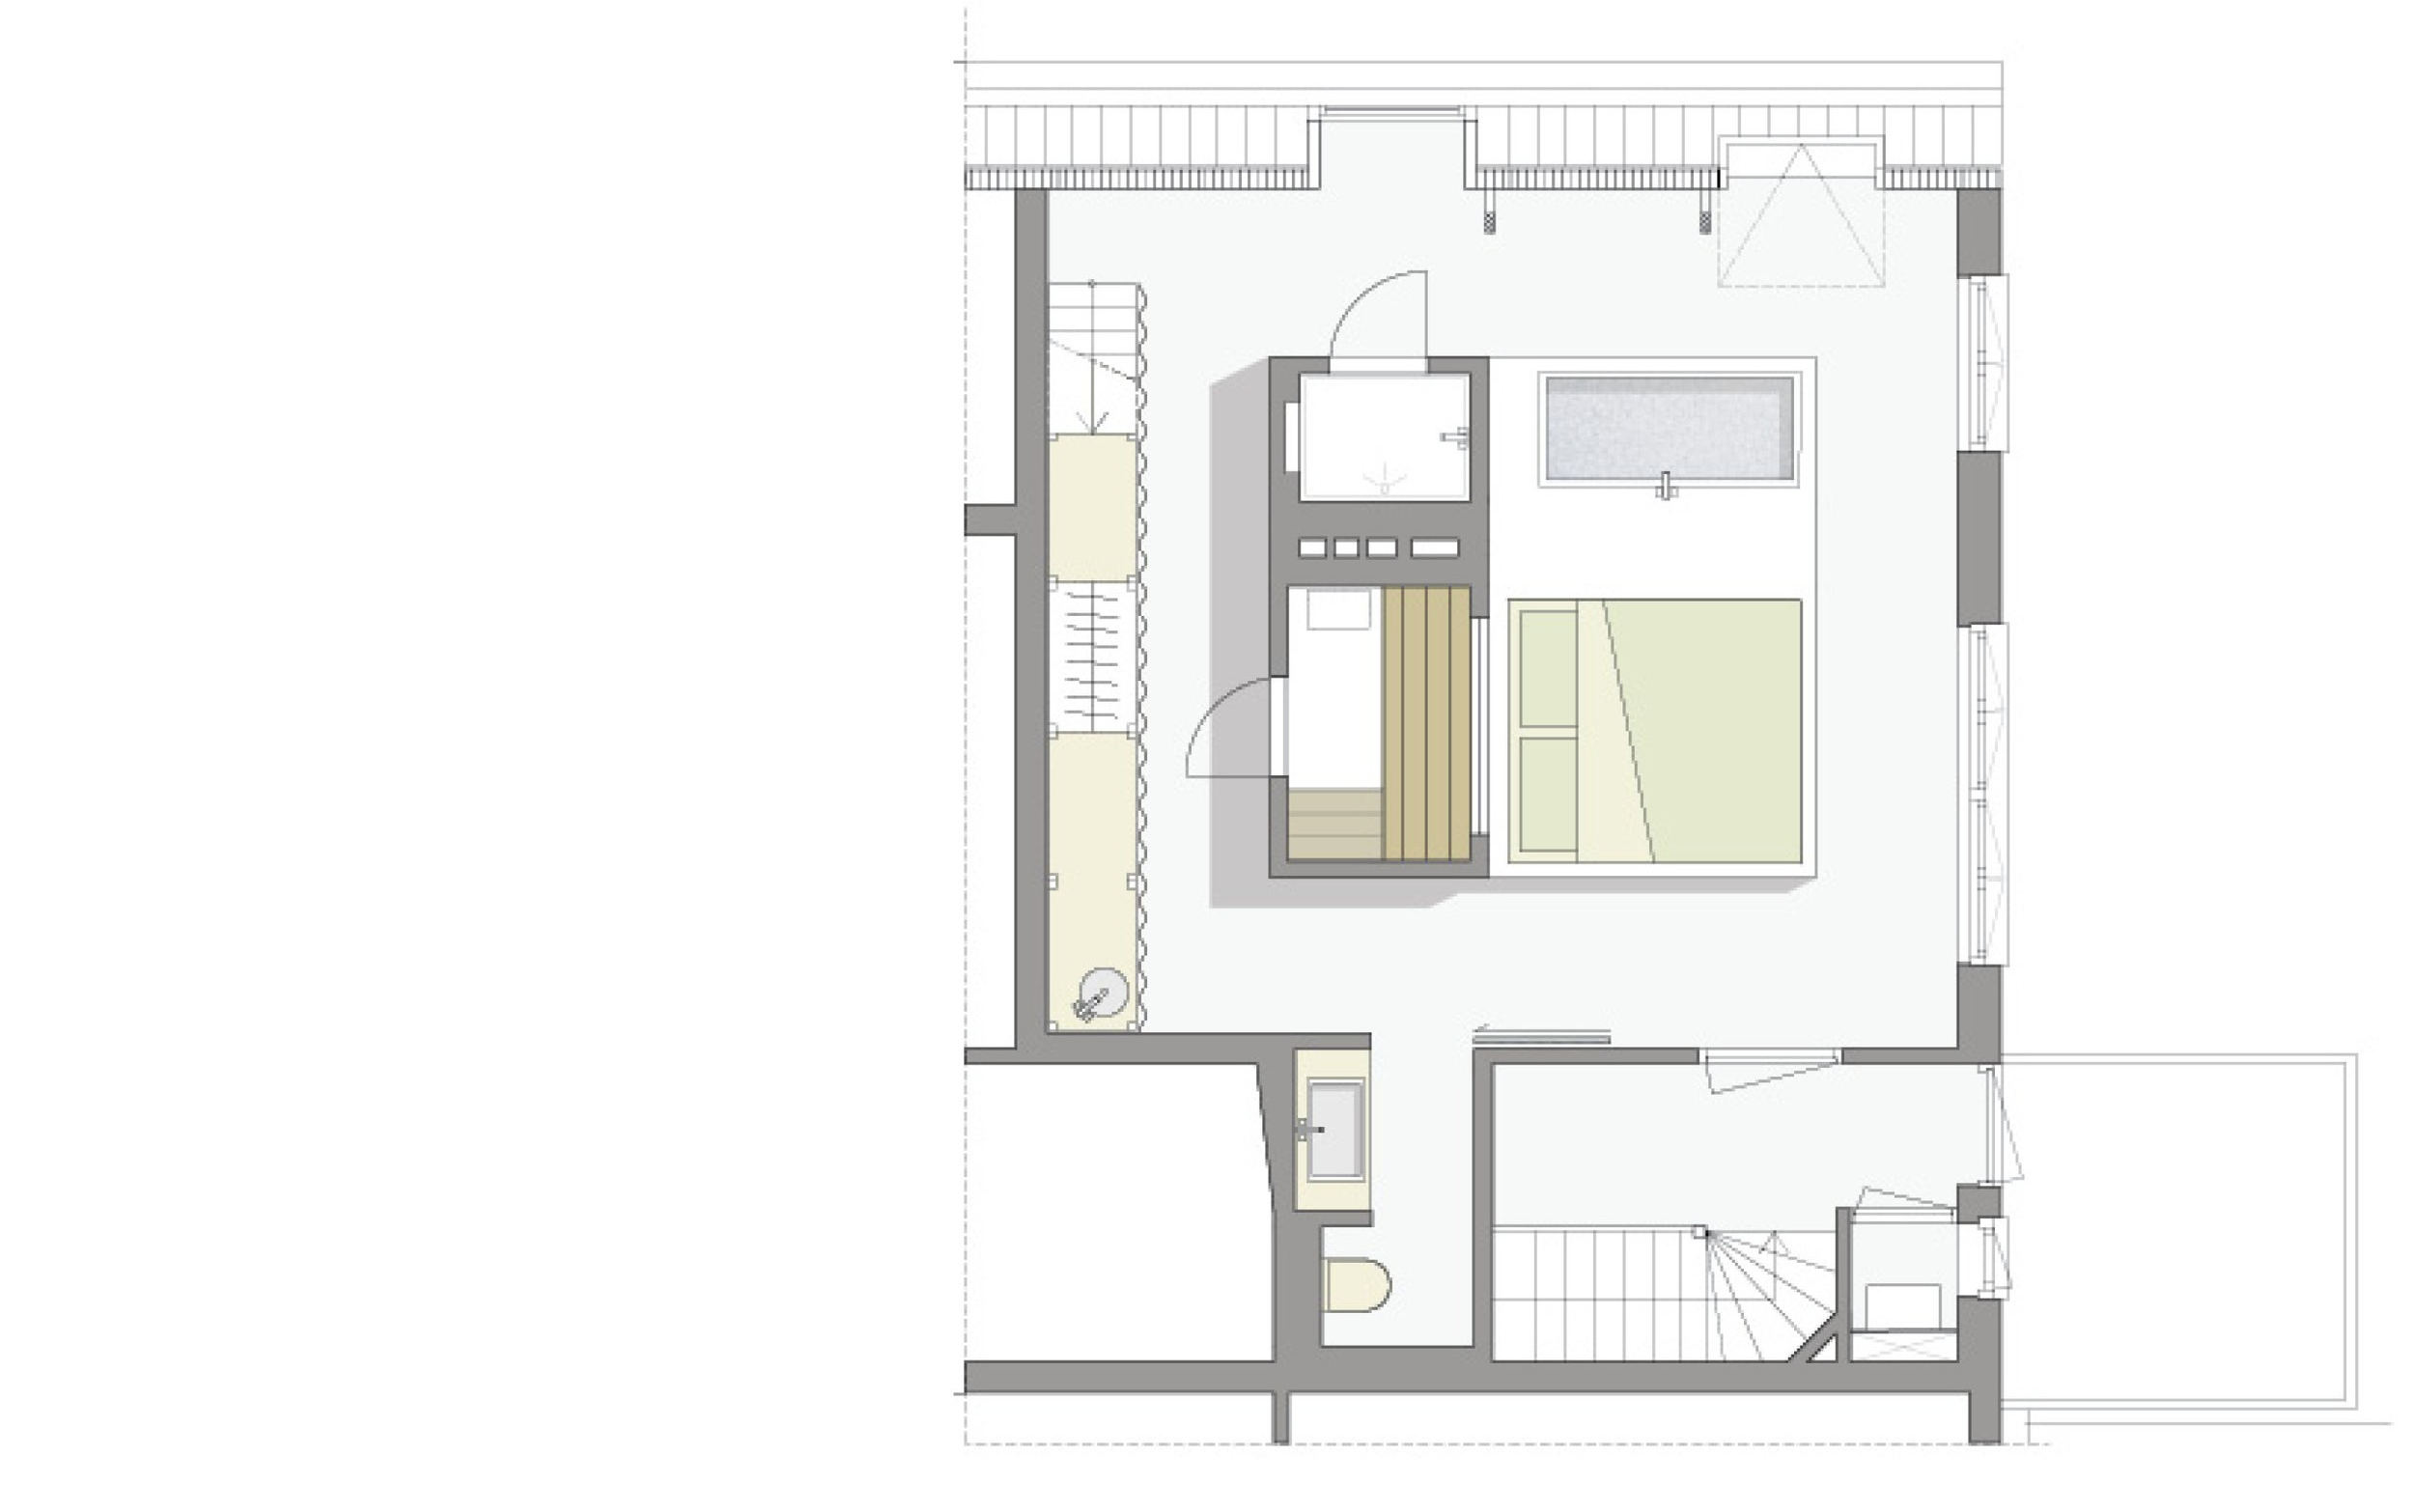 plan of the loft bedroom